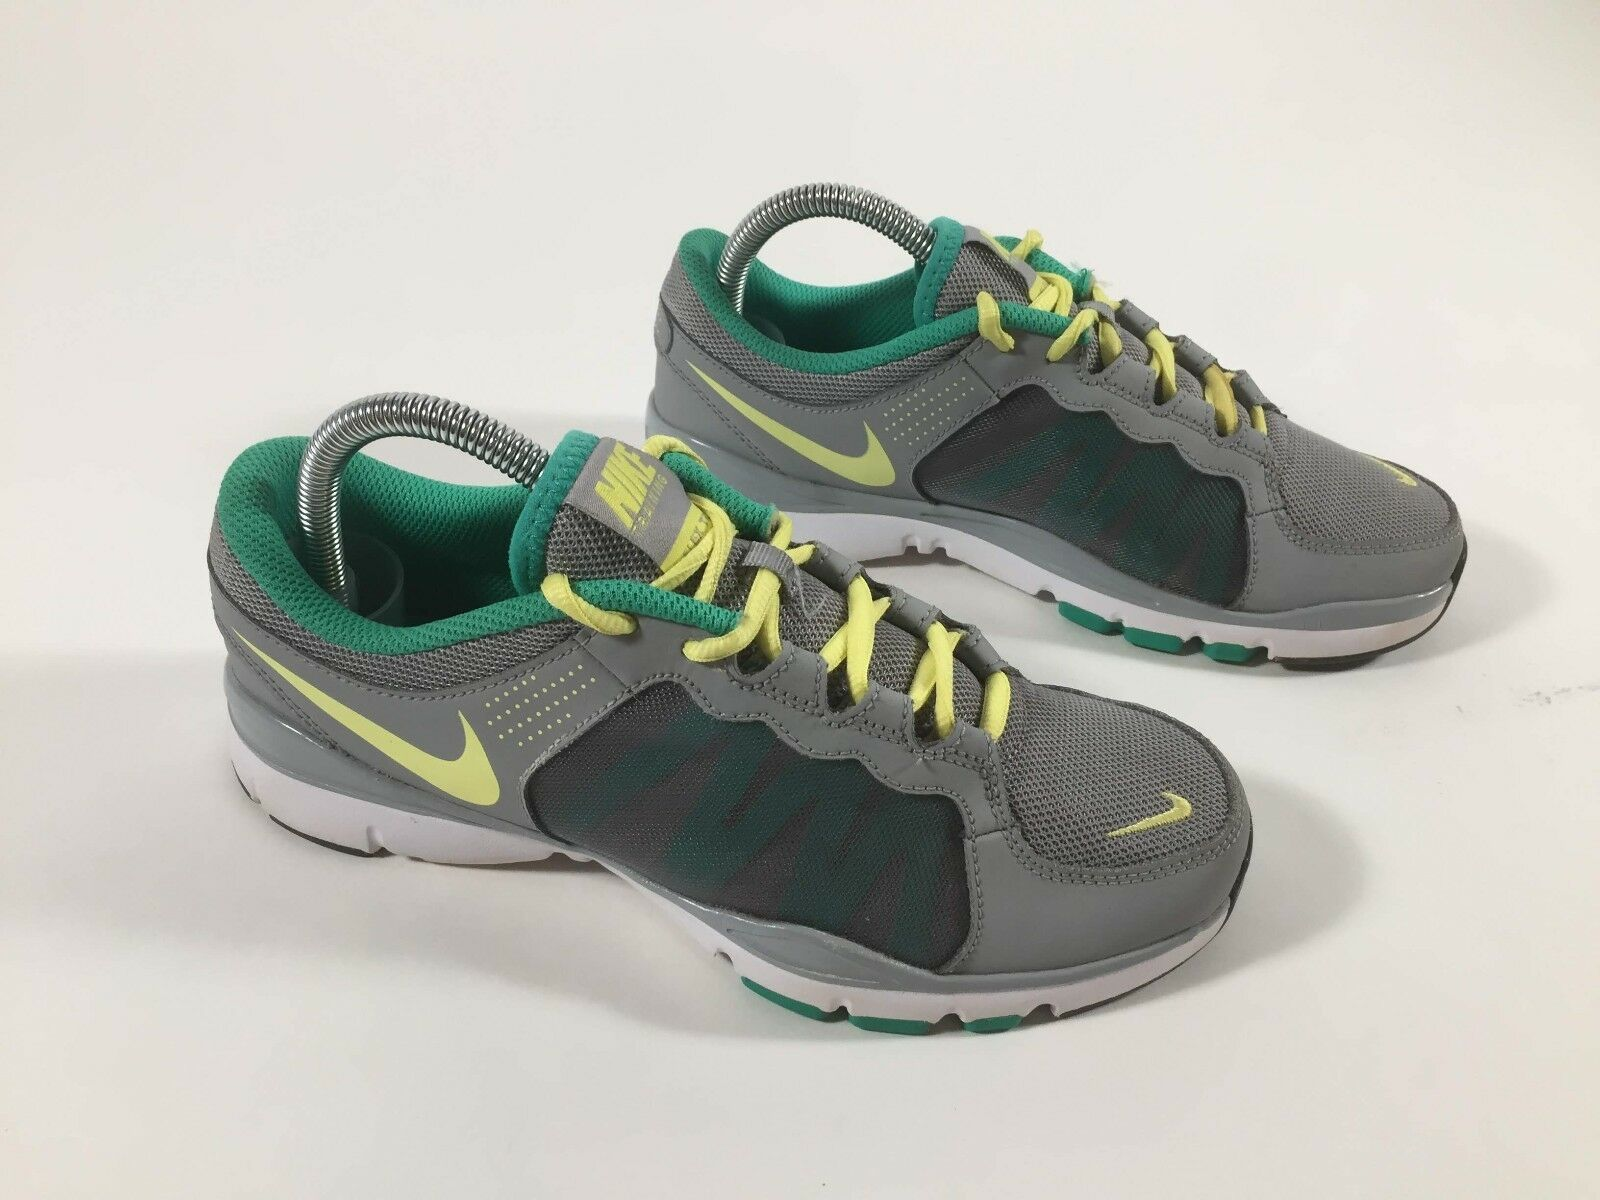 Women's NIKE Flex Trainer II 2 Grey/Teal/Yellow Shoes 511332-013 -Comfortable Comfortable and good-looking